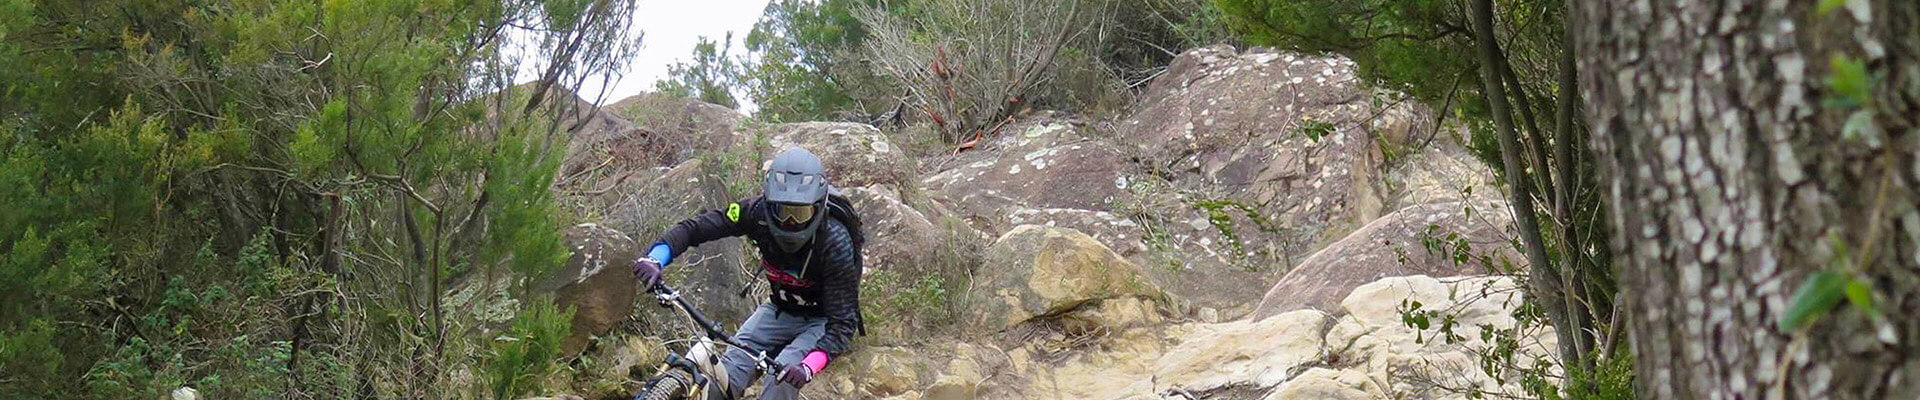 Biker downhill between rocks and slopes